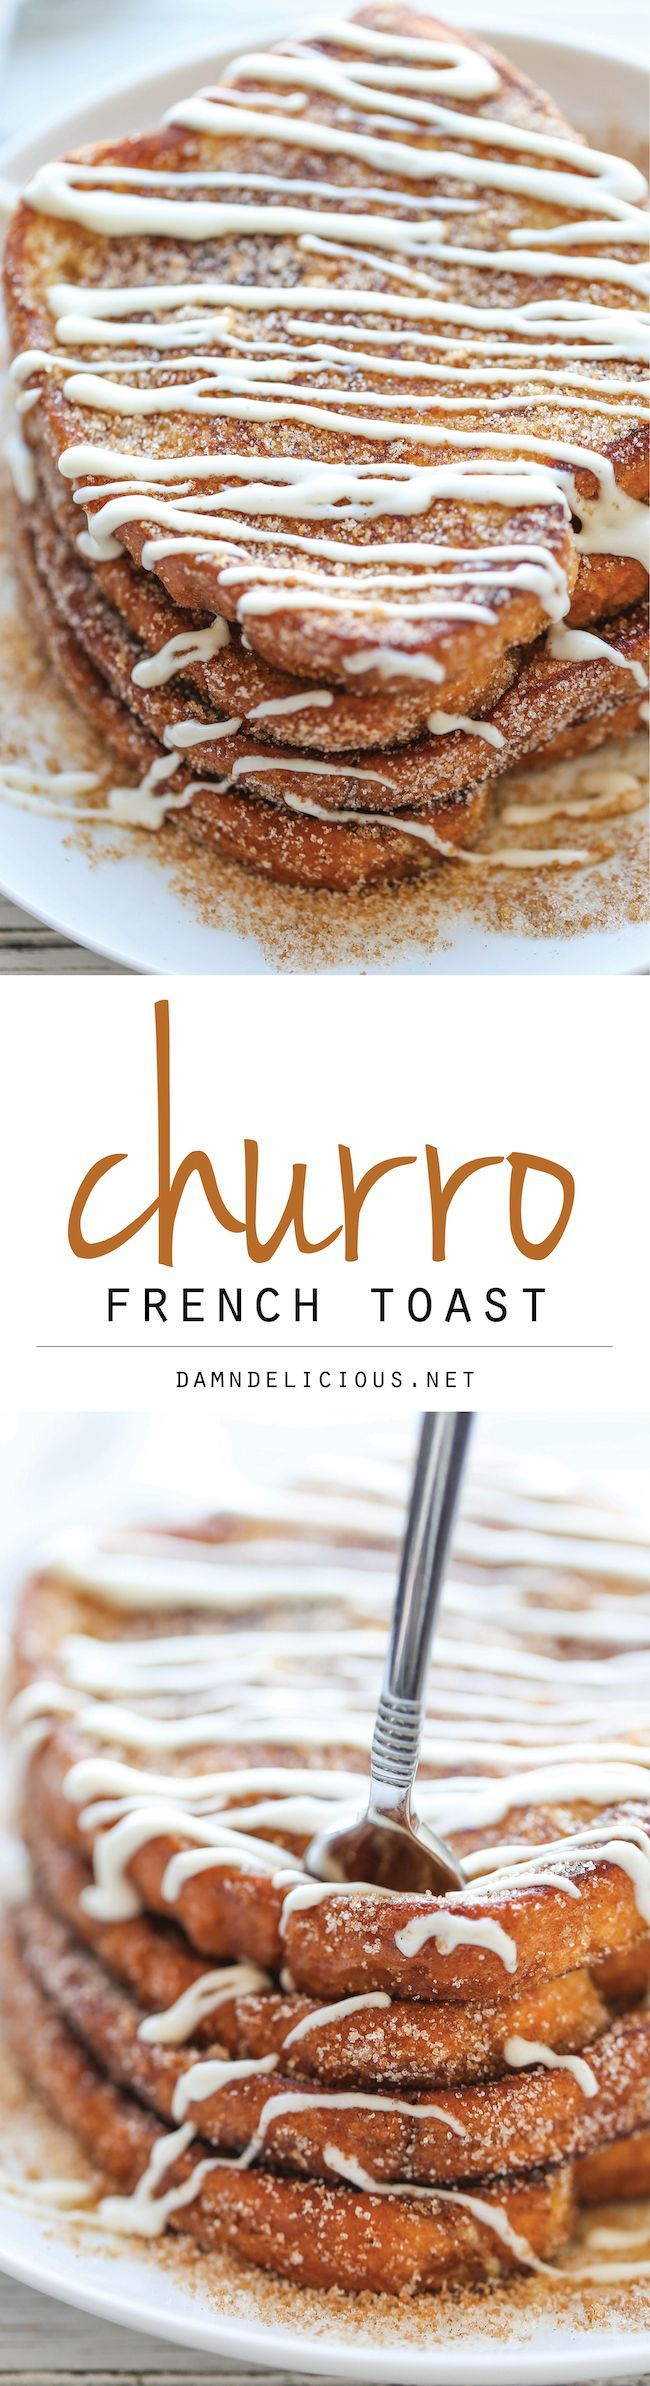 Churro French Toast - The most amazing, most buttery French toast you will ever have, coated in cinnamon sugar and drizzled with an epic cream cheese glaze!